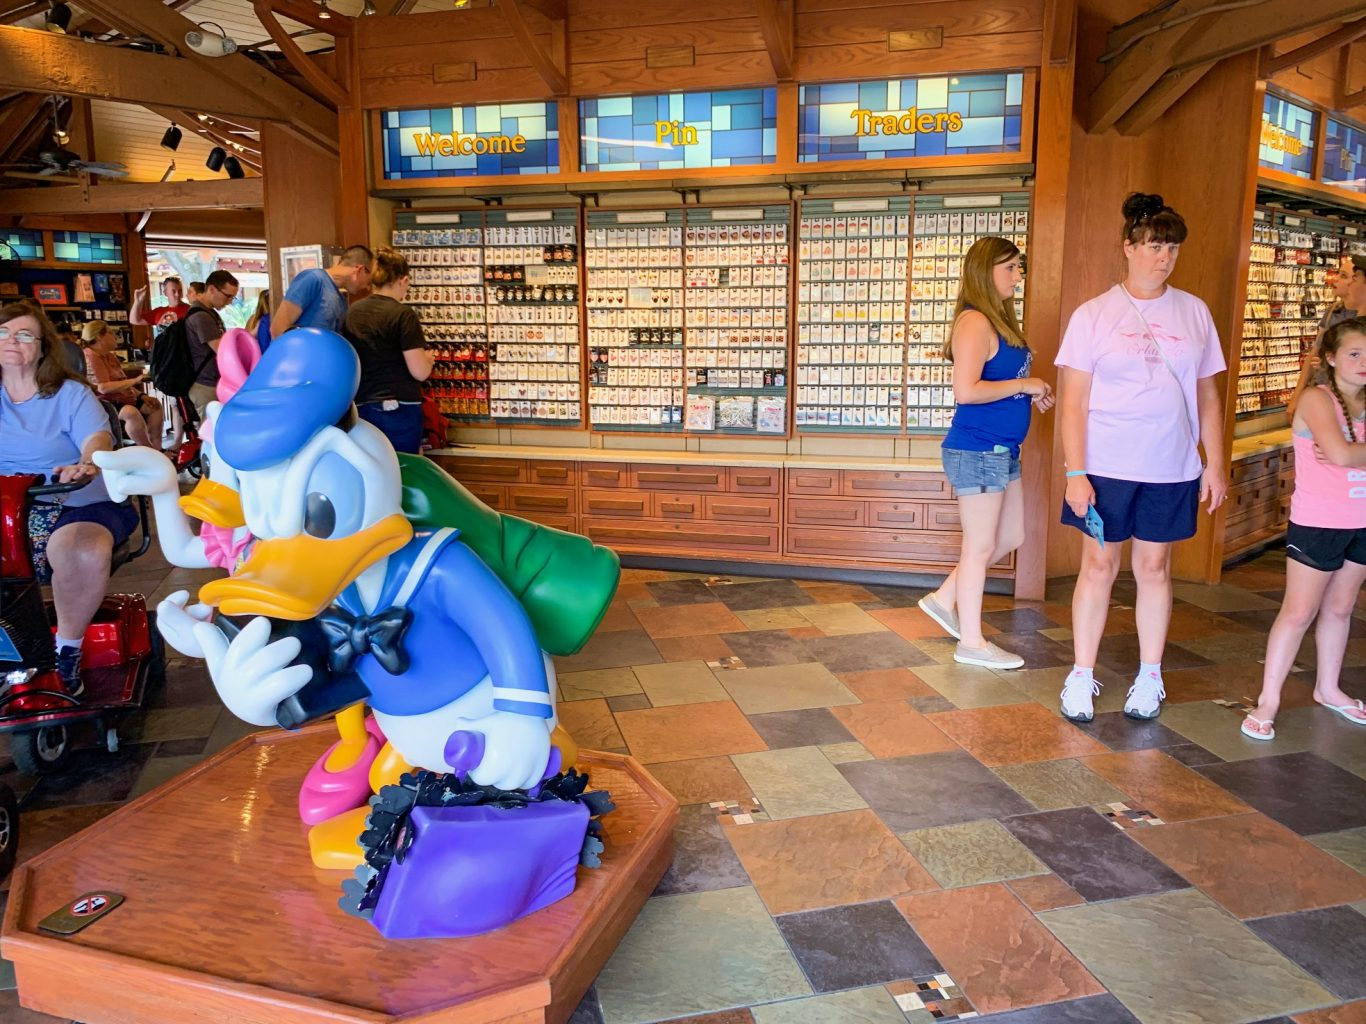 Inside of the Pin Traders store at Disney Springs with Donald Duck in the foreground and two people shopping in the background